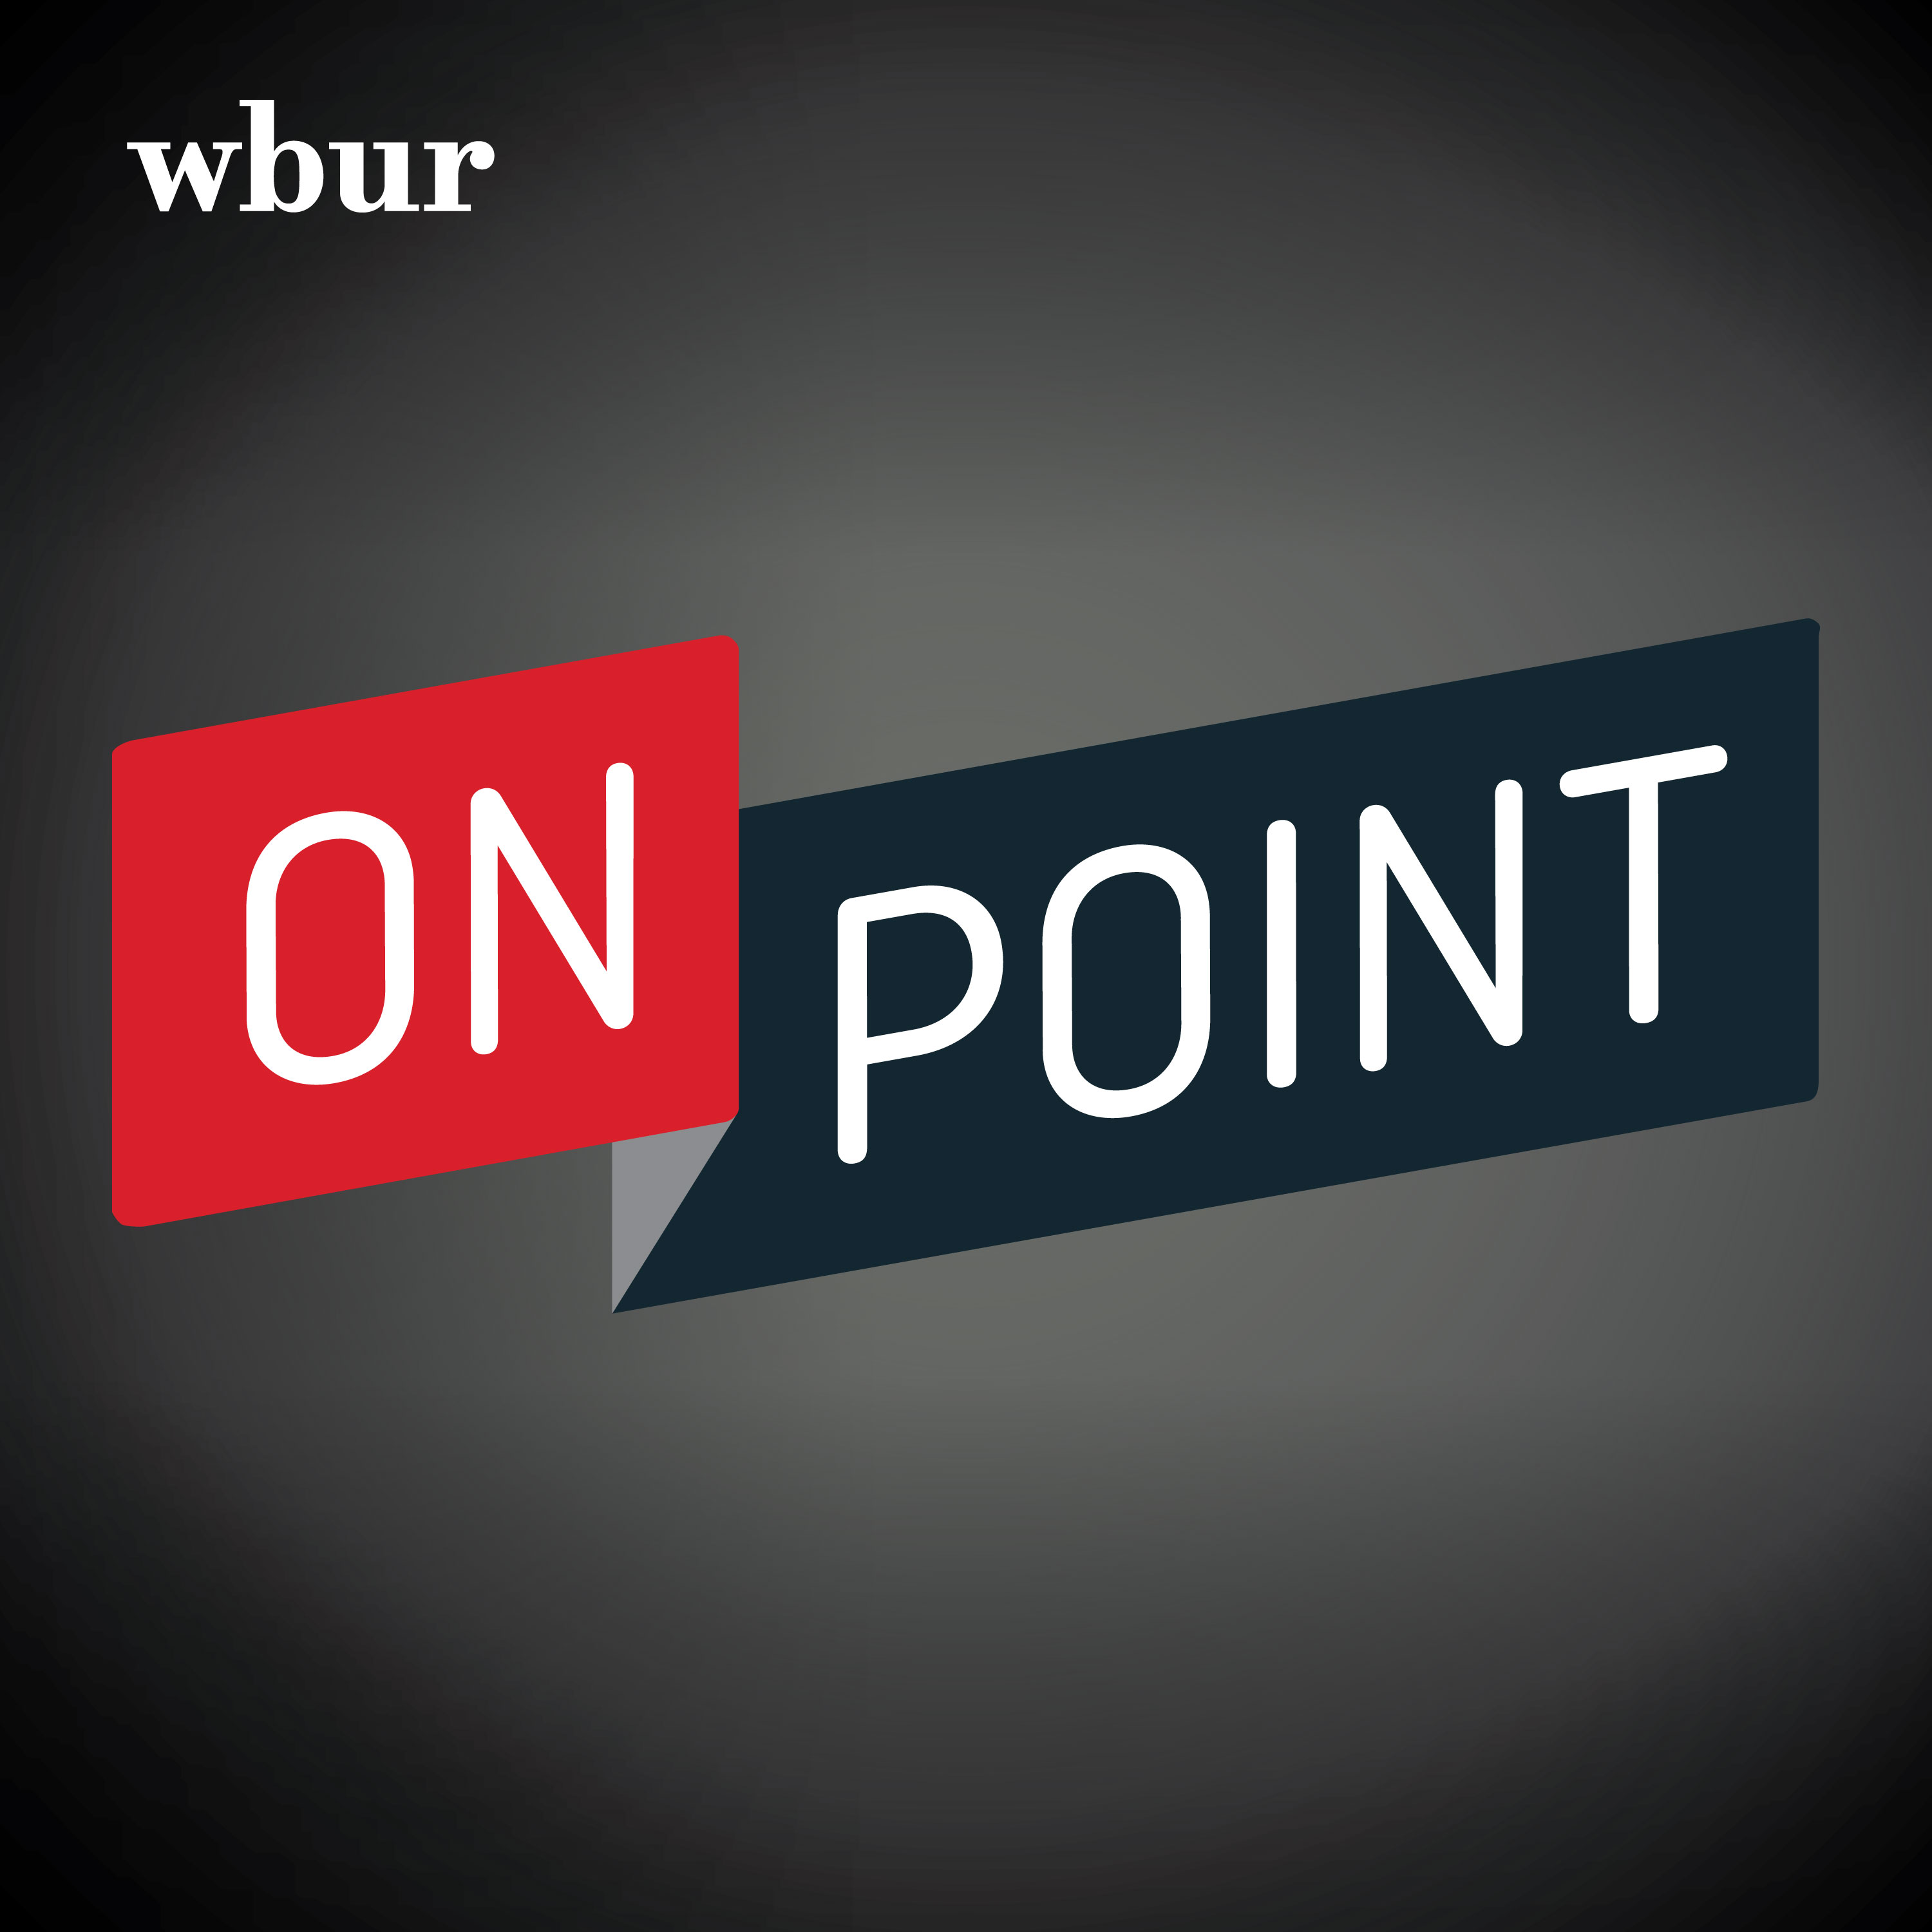 WBUR-FM: On Point with Tom Ashbrook Podcast